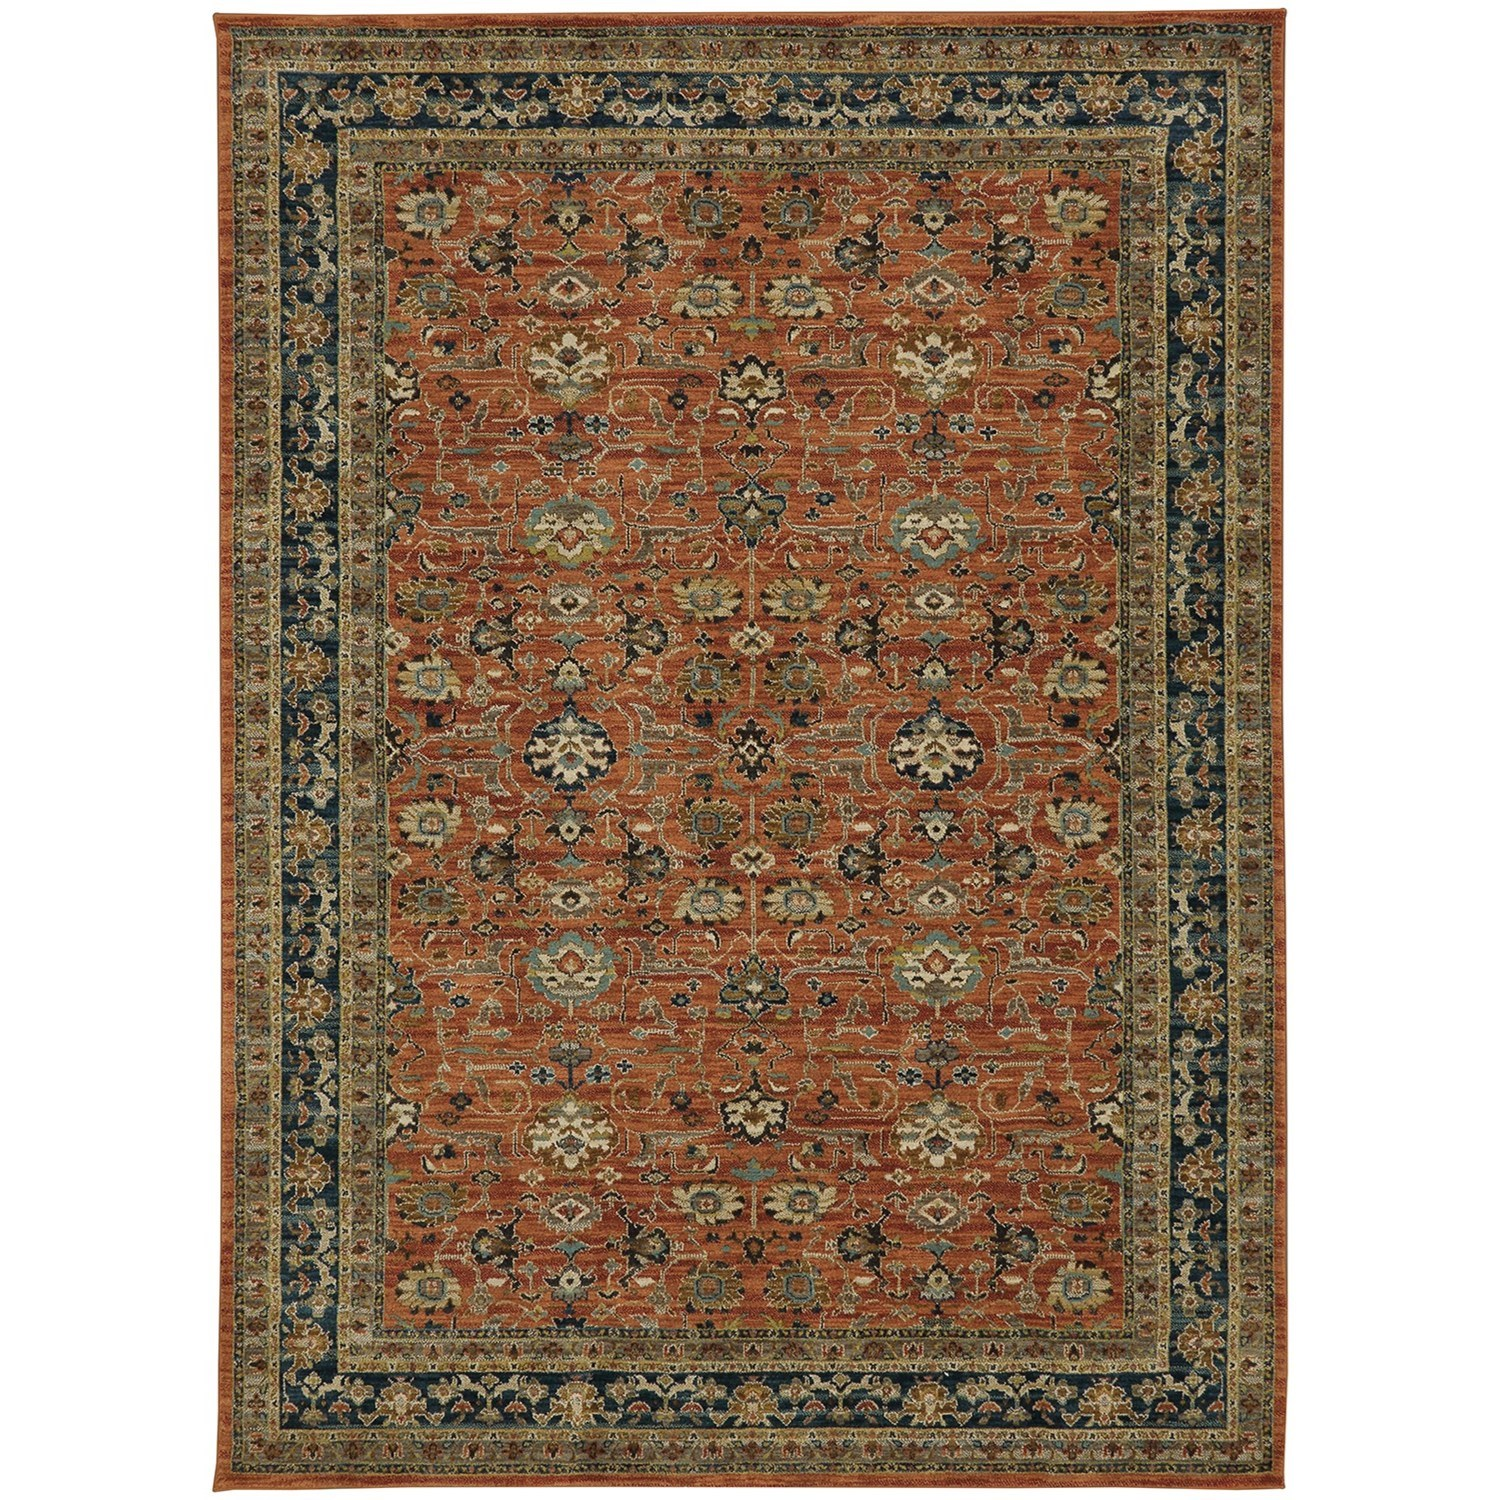 """Spice Market 9' 6""""x12' 11"""" Rectangle Ornamental Area Rug by Karastan Rugs at Story & Lee Furniture"""